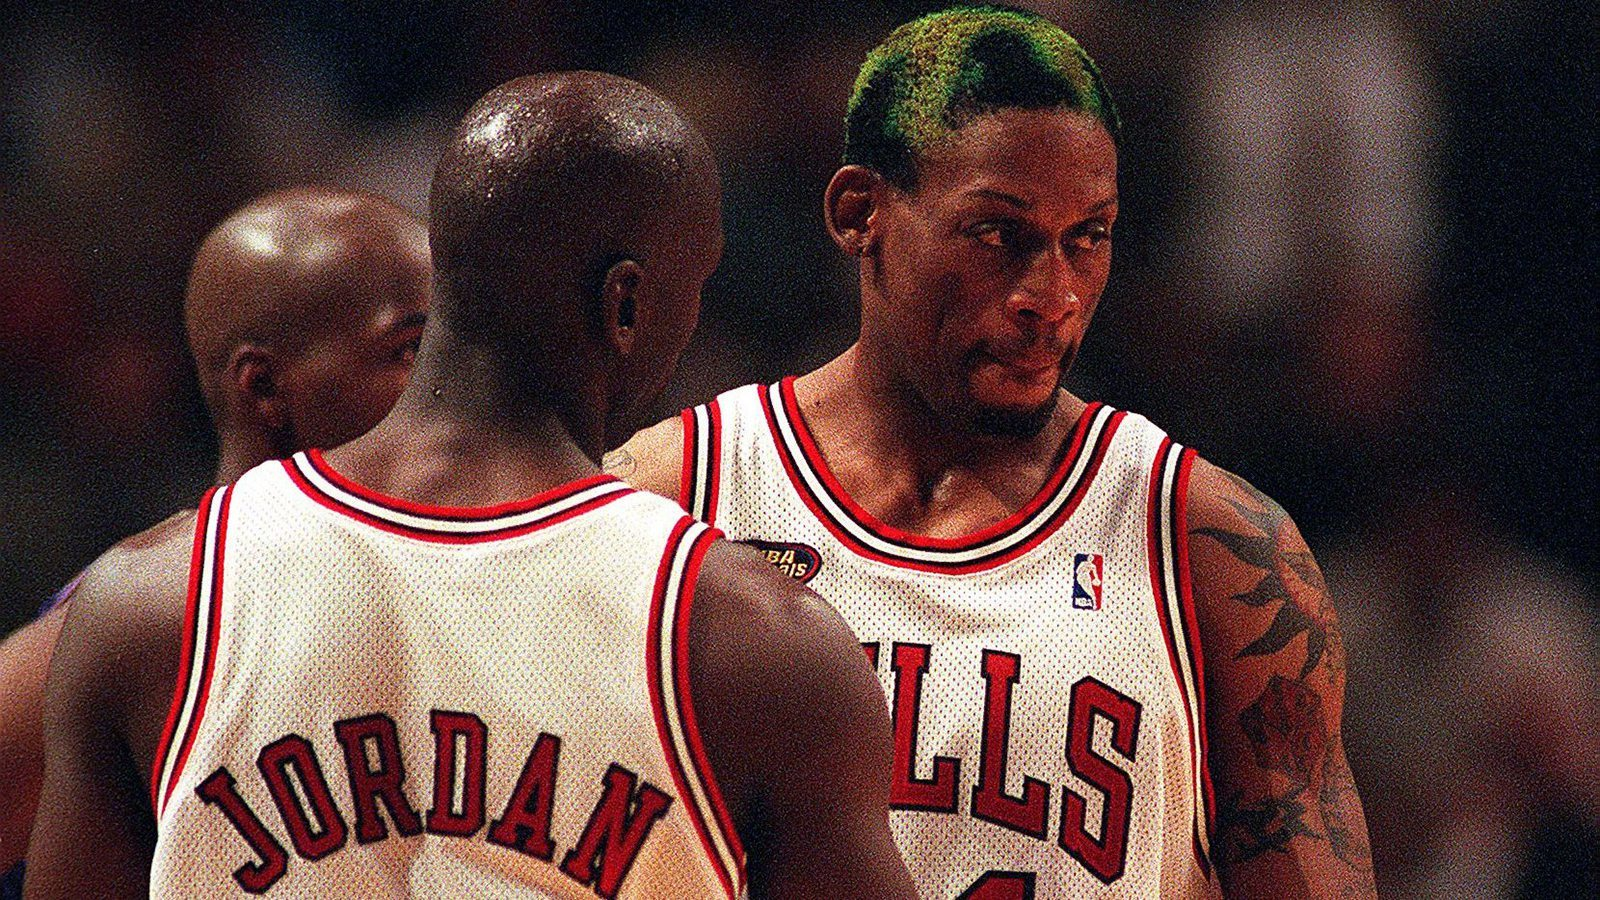 Bulls lost to Magic in 1995 NBA playoffs